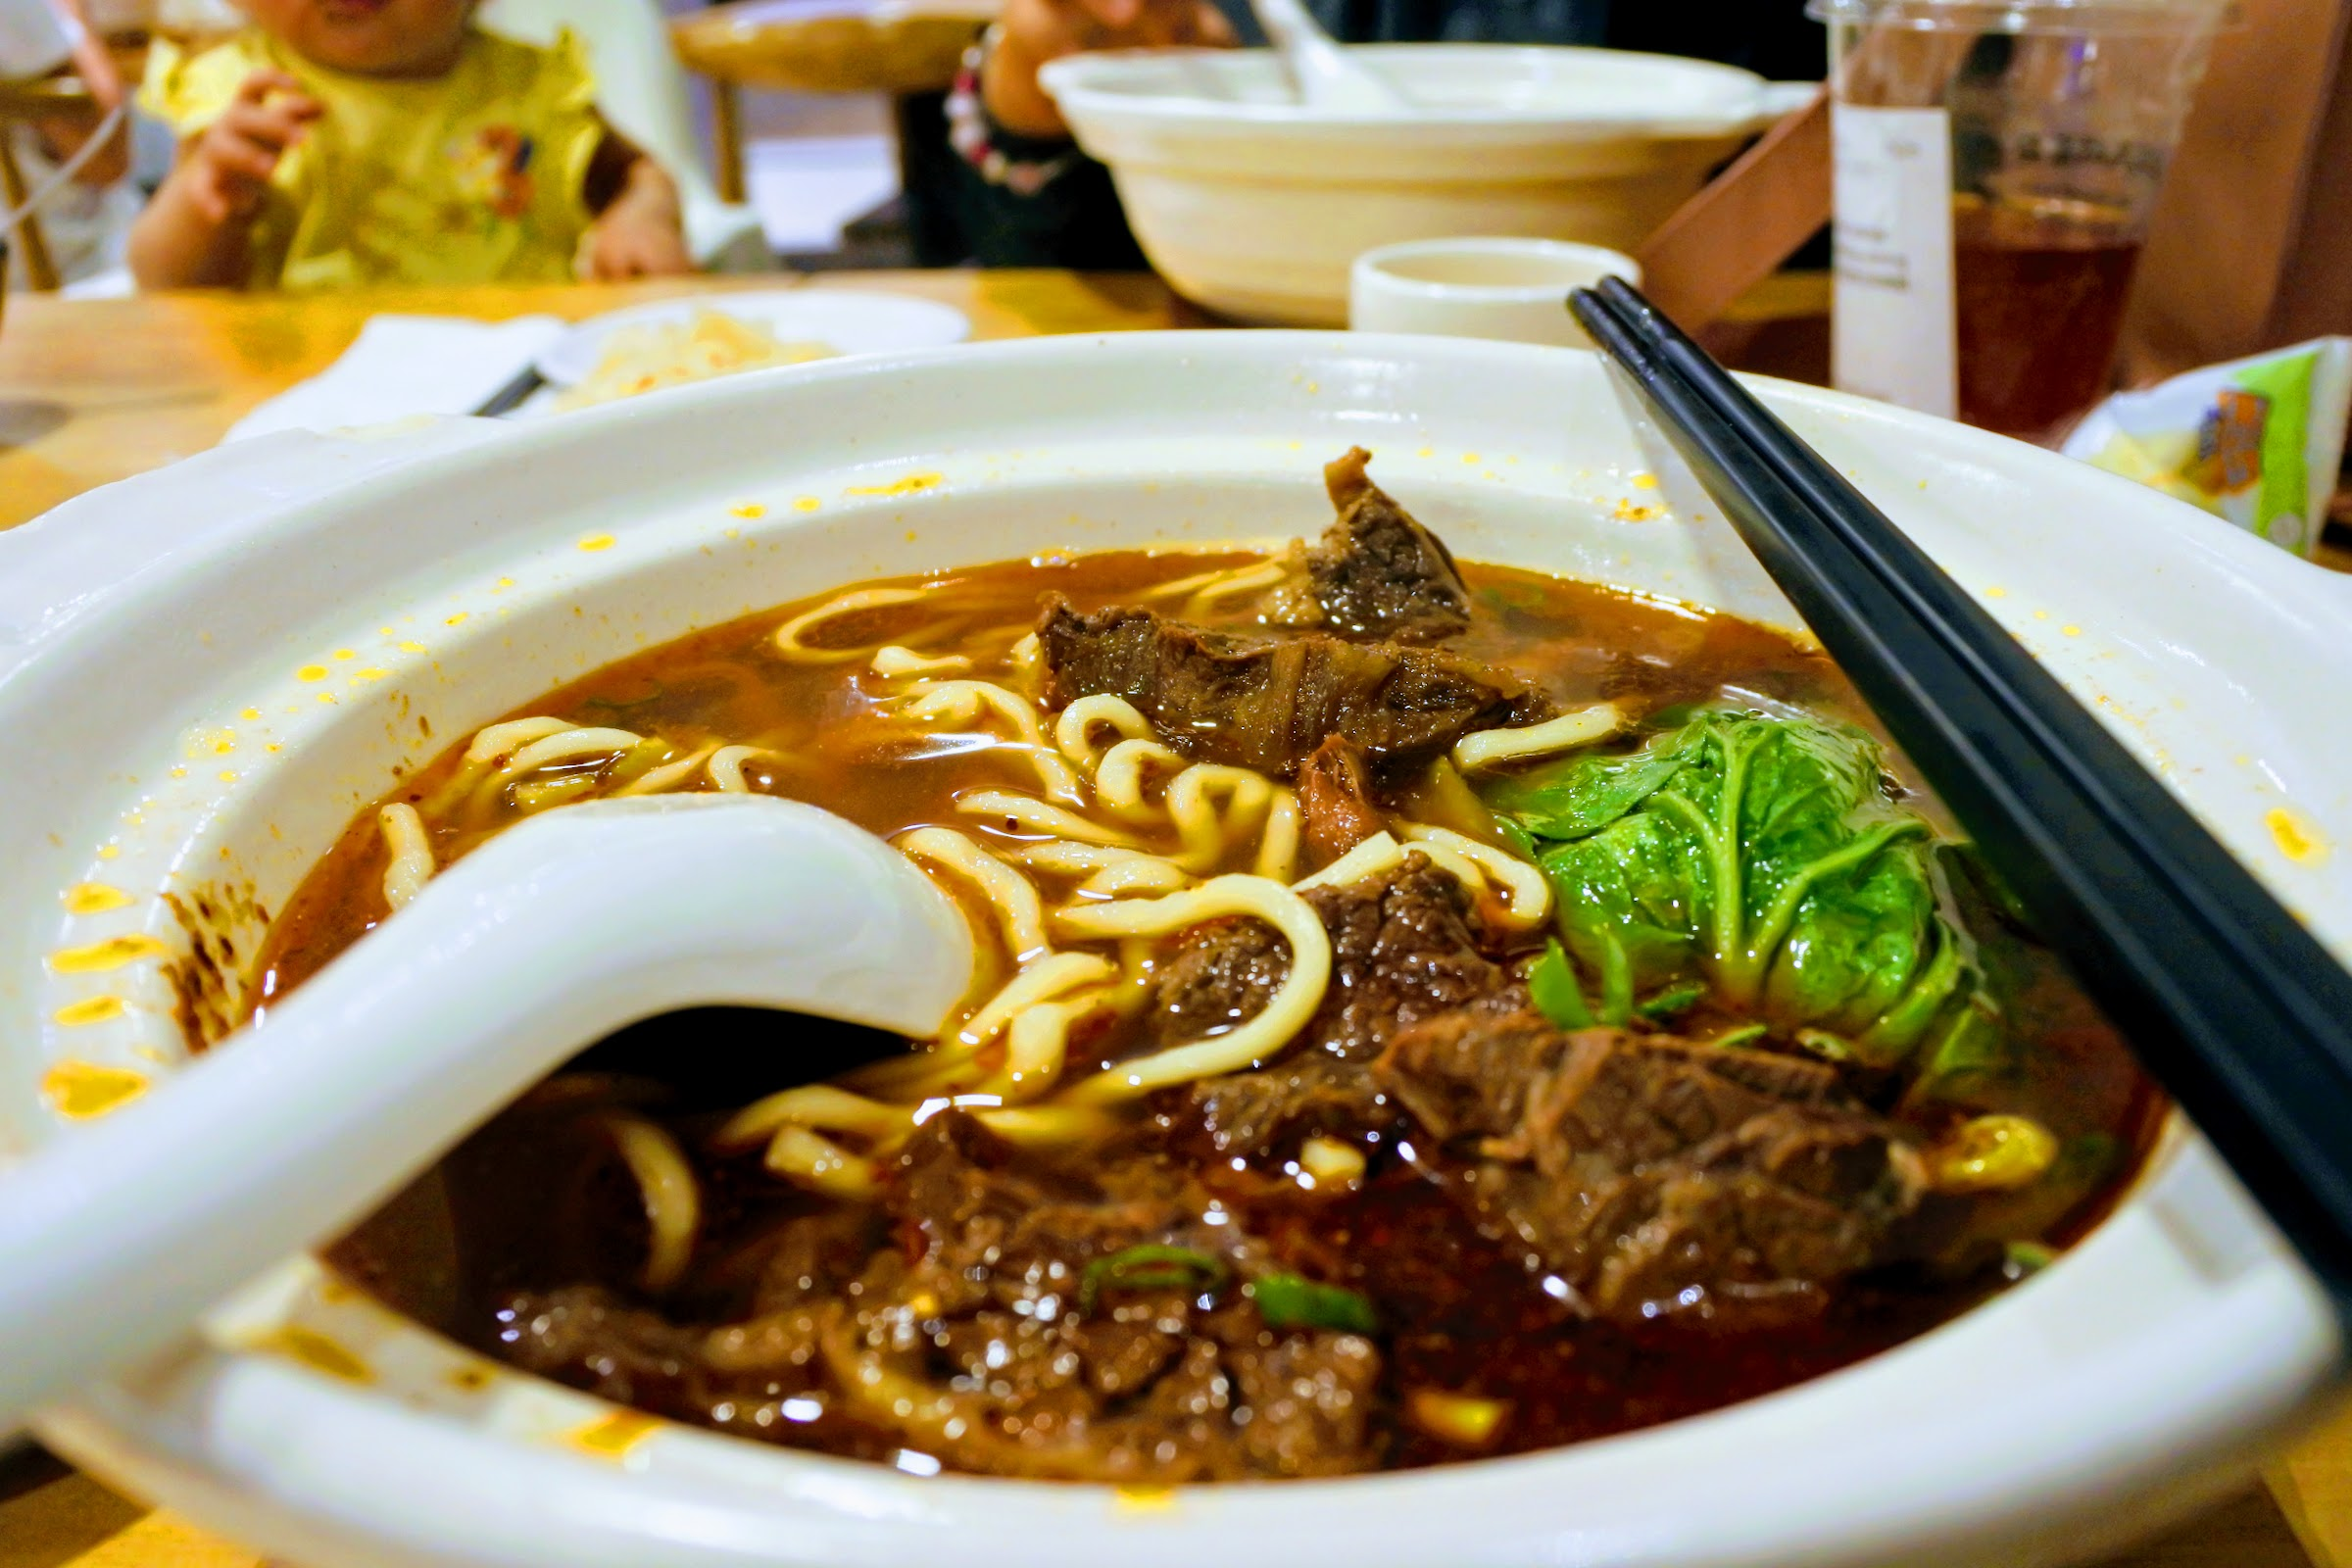 Eat Taiwan beef noodle during 3 nights in Taiwan